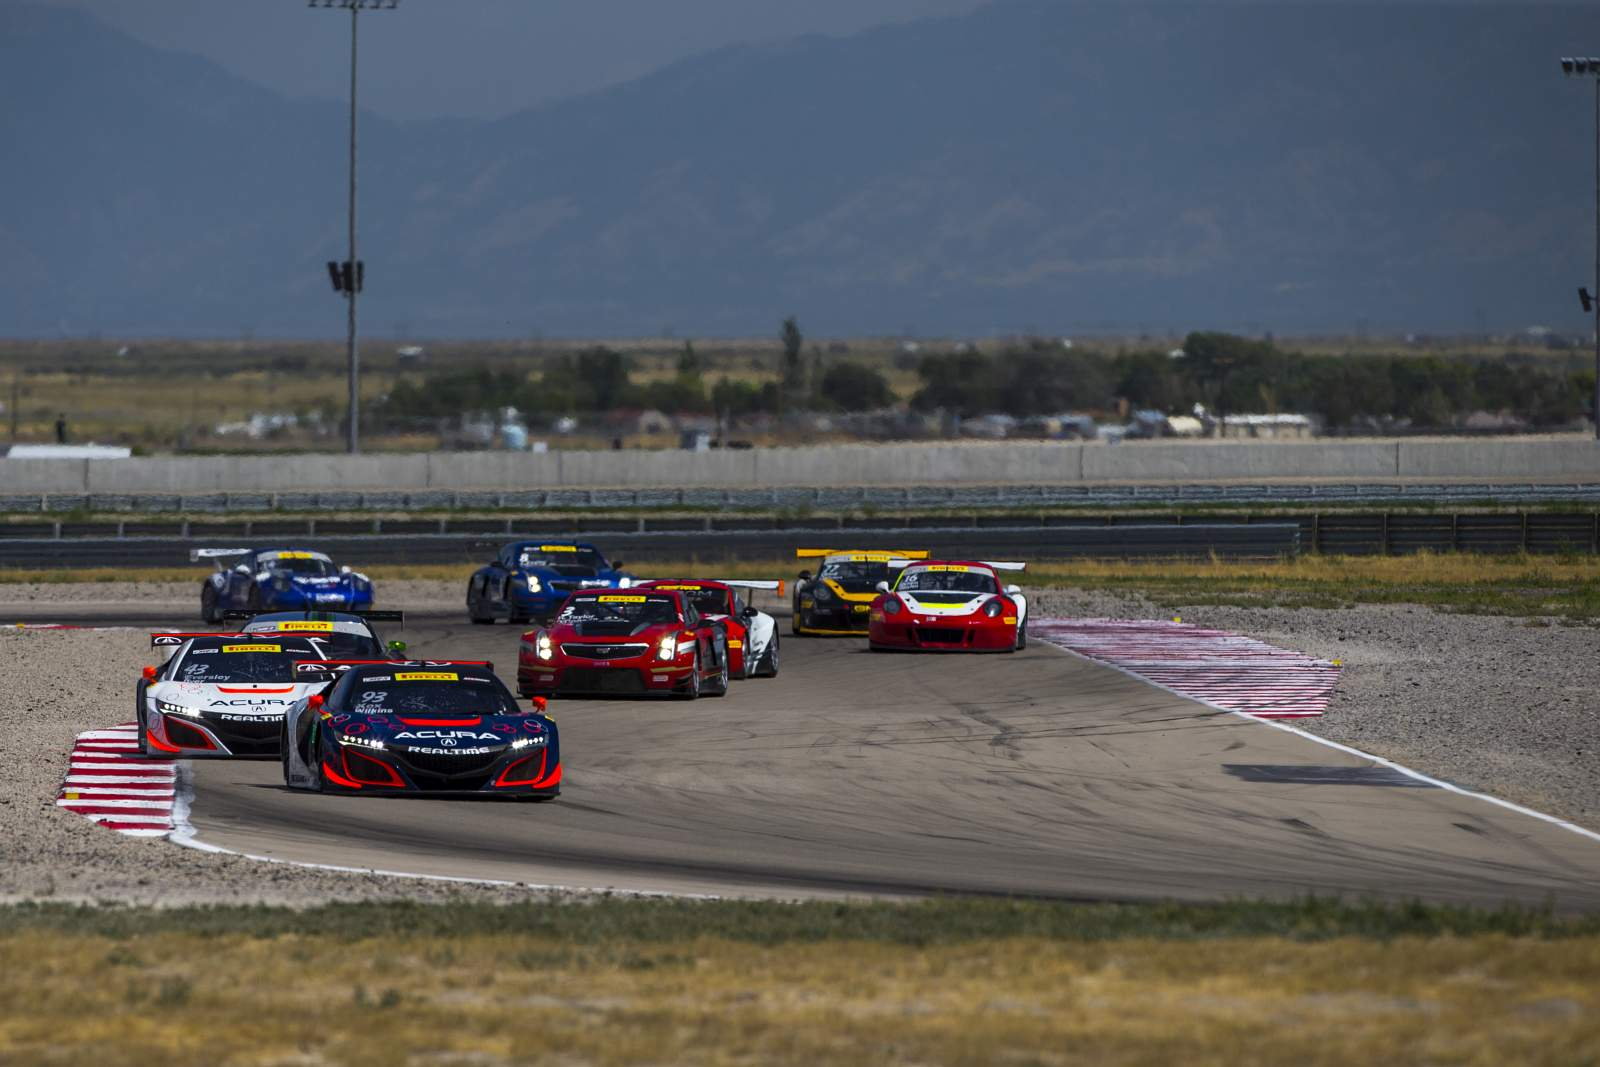 peter-kox-realtime-racing-pirelli-world-challenge-utah-motorsport-campus--177